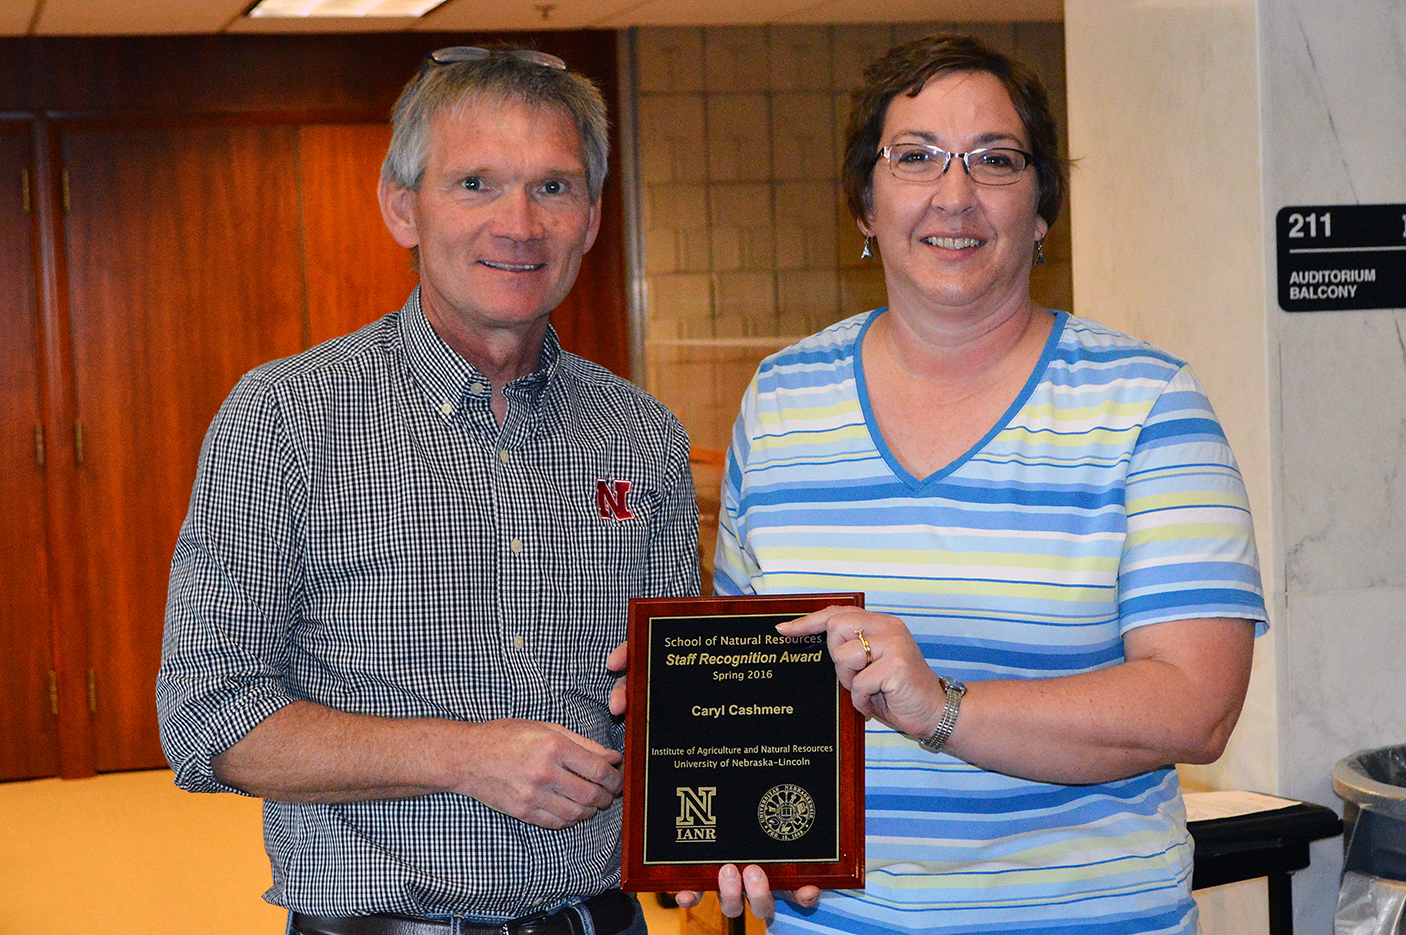 SNR director John Carroll presents Caryl Cashmere with the spring 2016 SNR Staff Recognition Award on April 15. (Shawna Richter-Ryerson | Natural Resources)